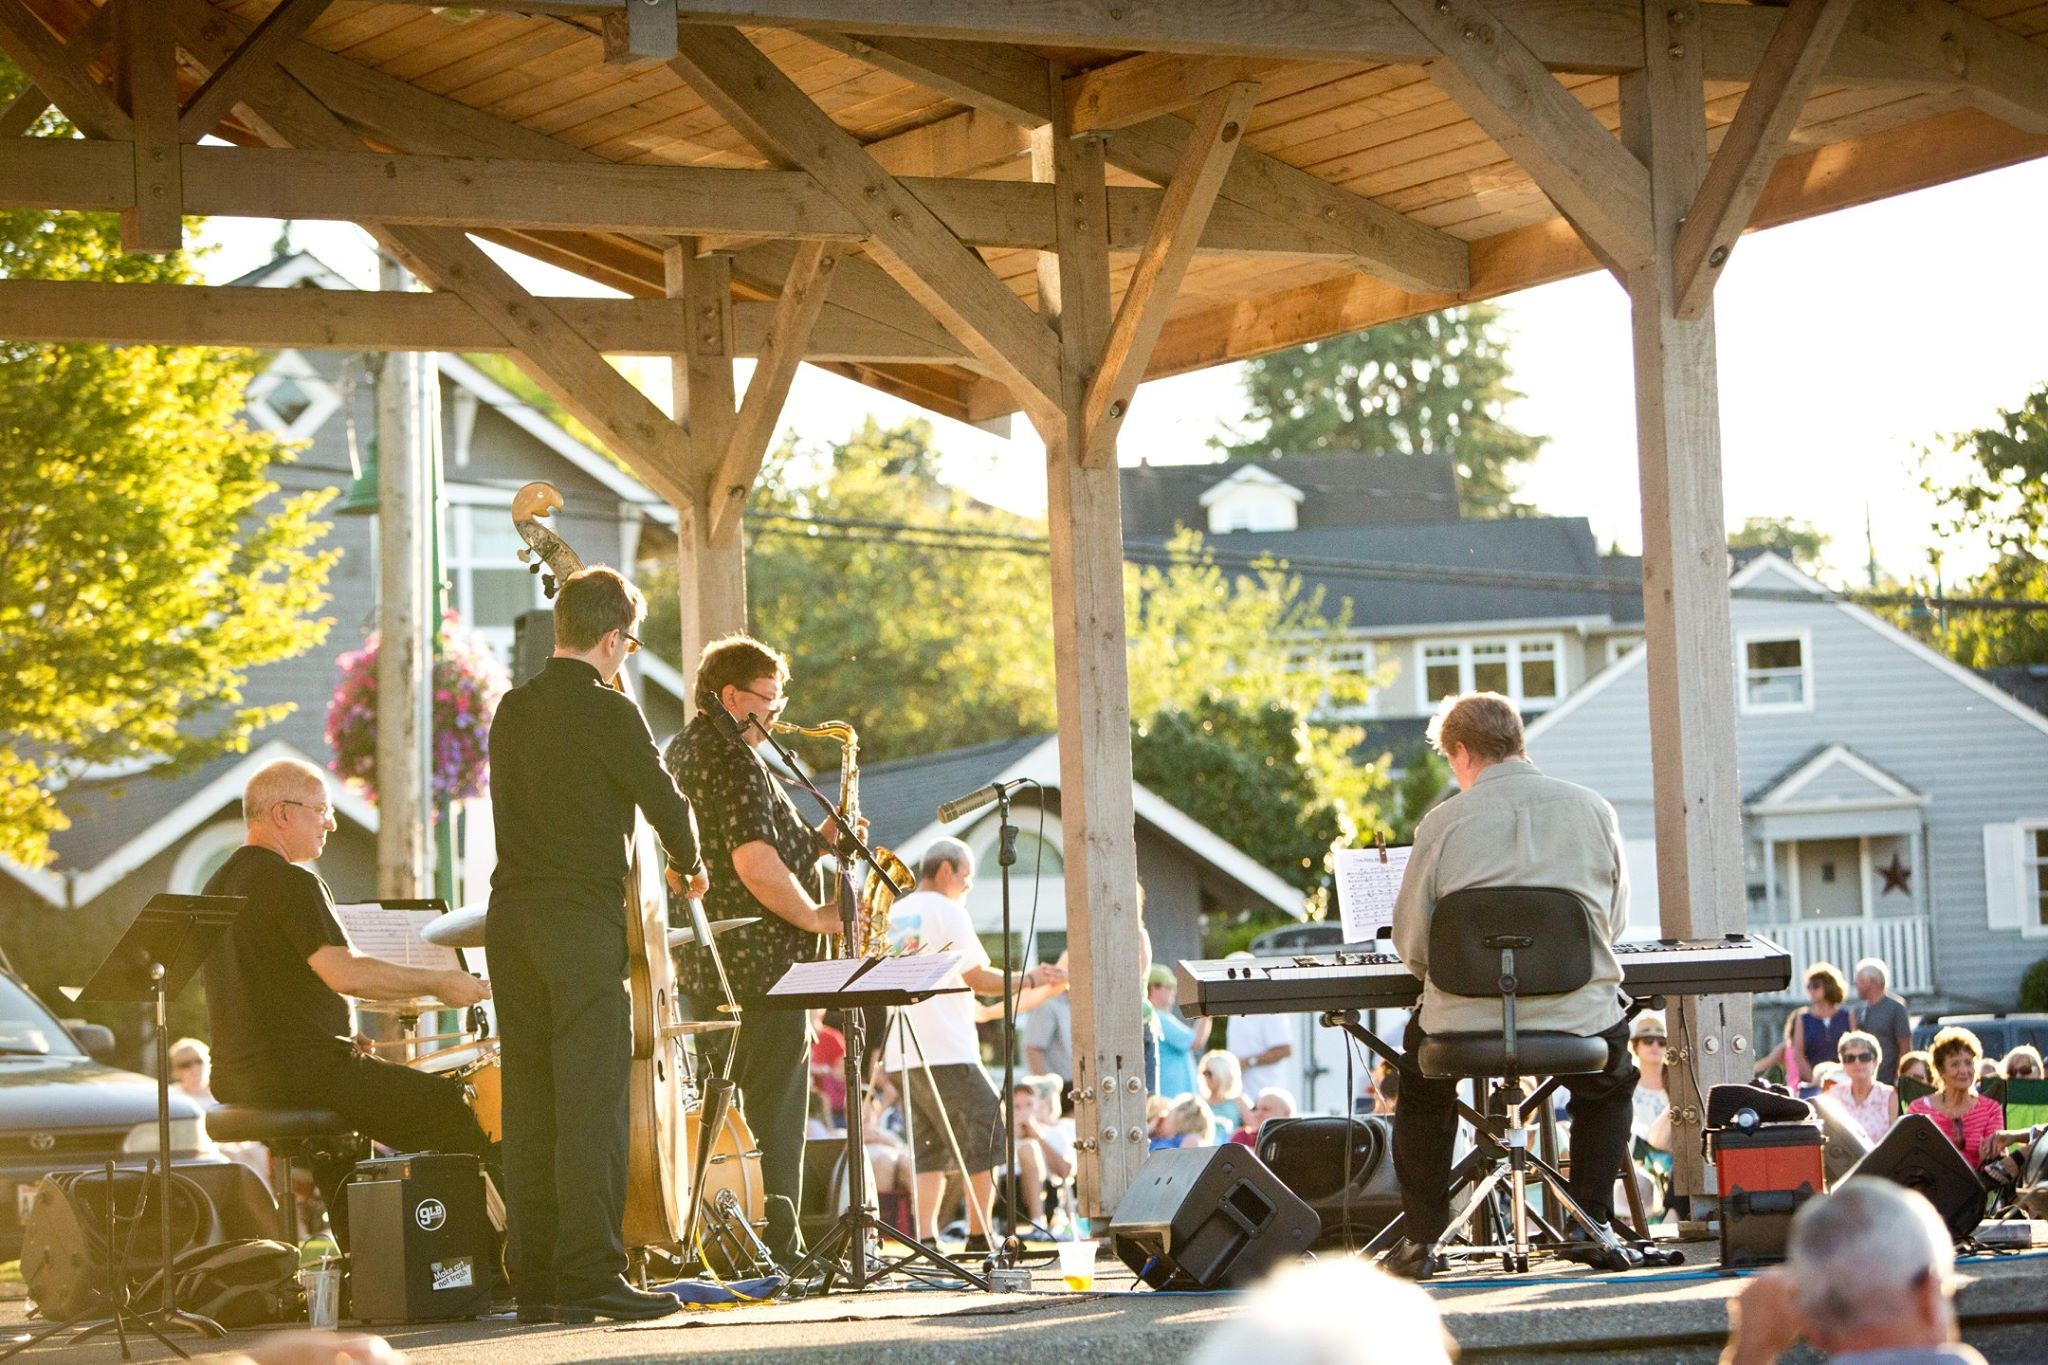 Summer concert in the park at Skansie Brothers Park in Gig Harbor